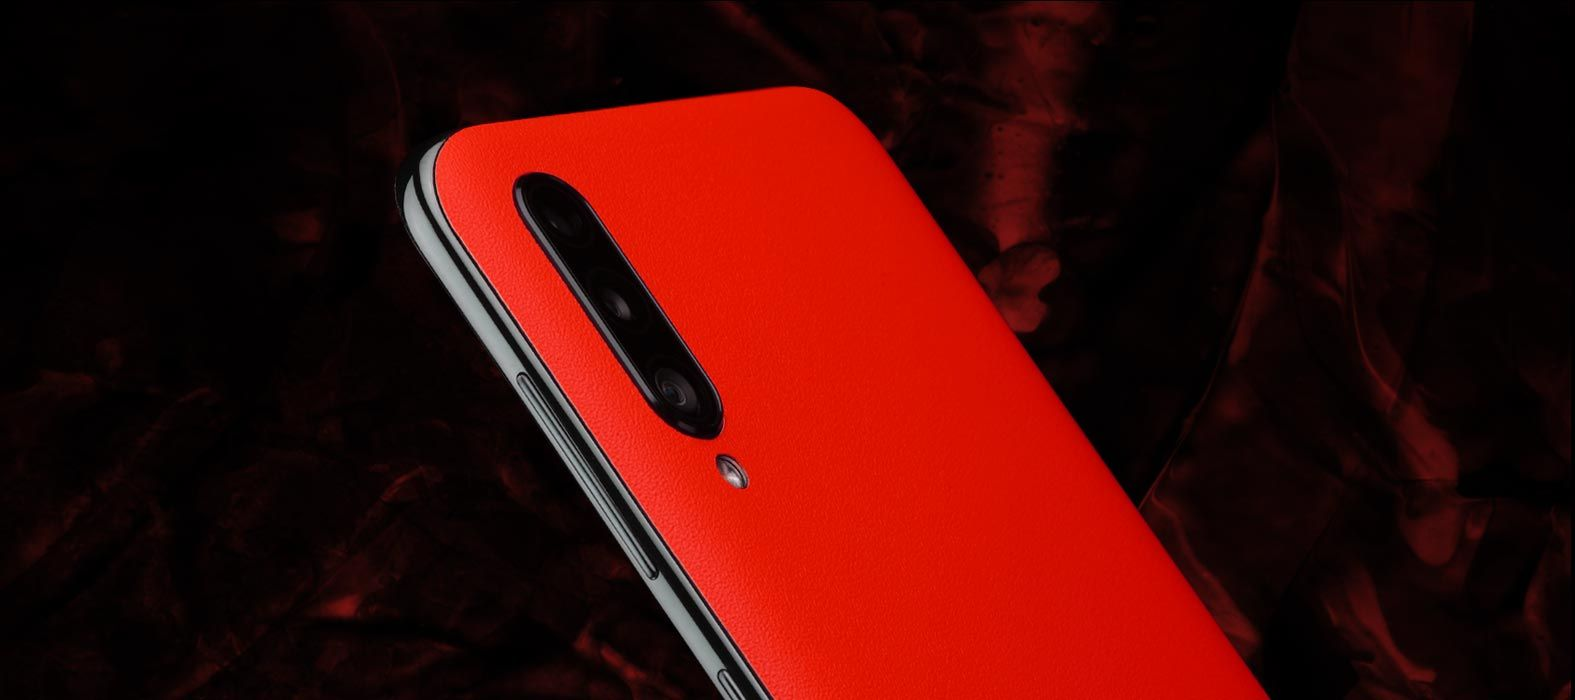 Galaxy A50s sandstone red skins